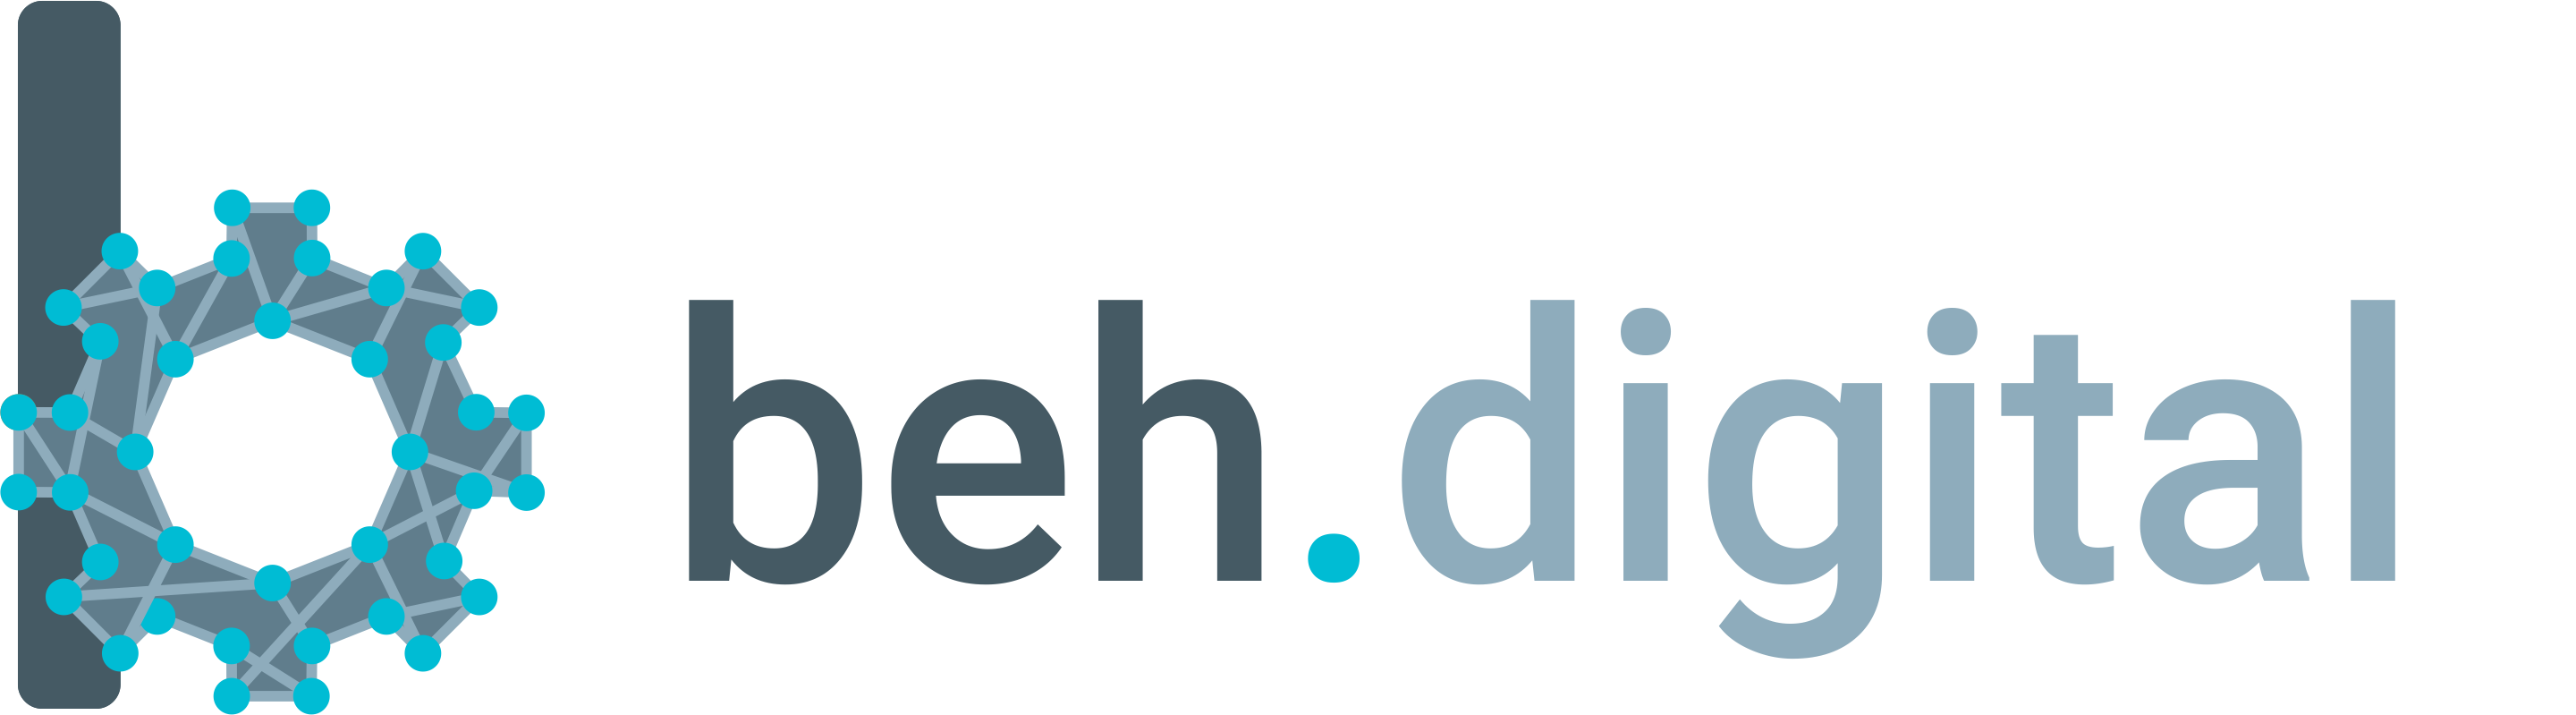 beh.digital GmbH